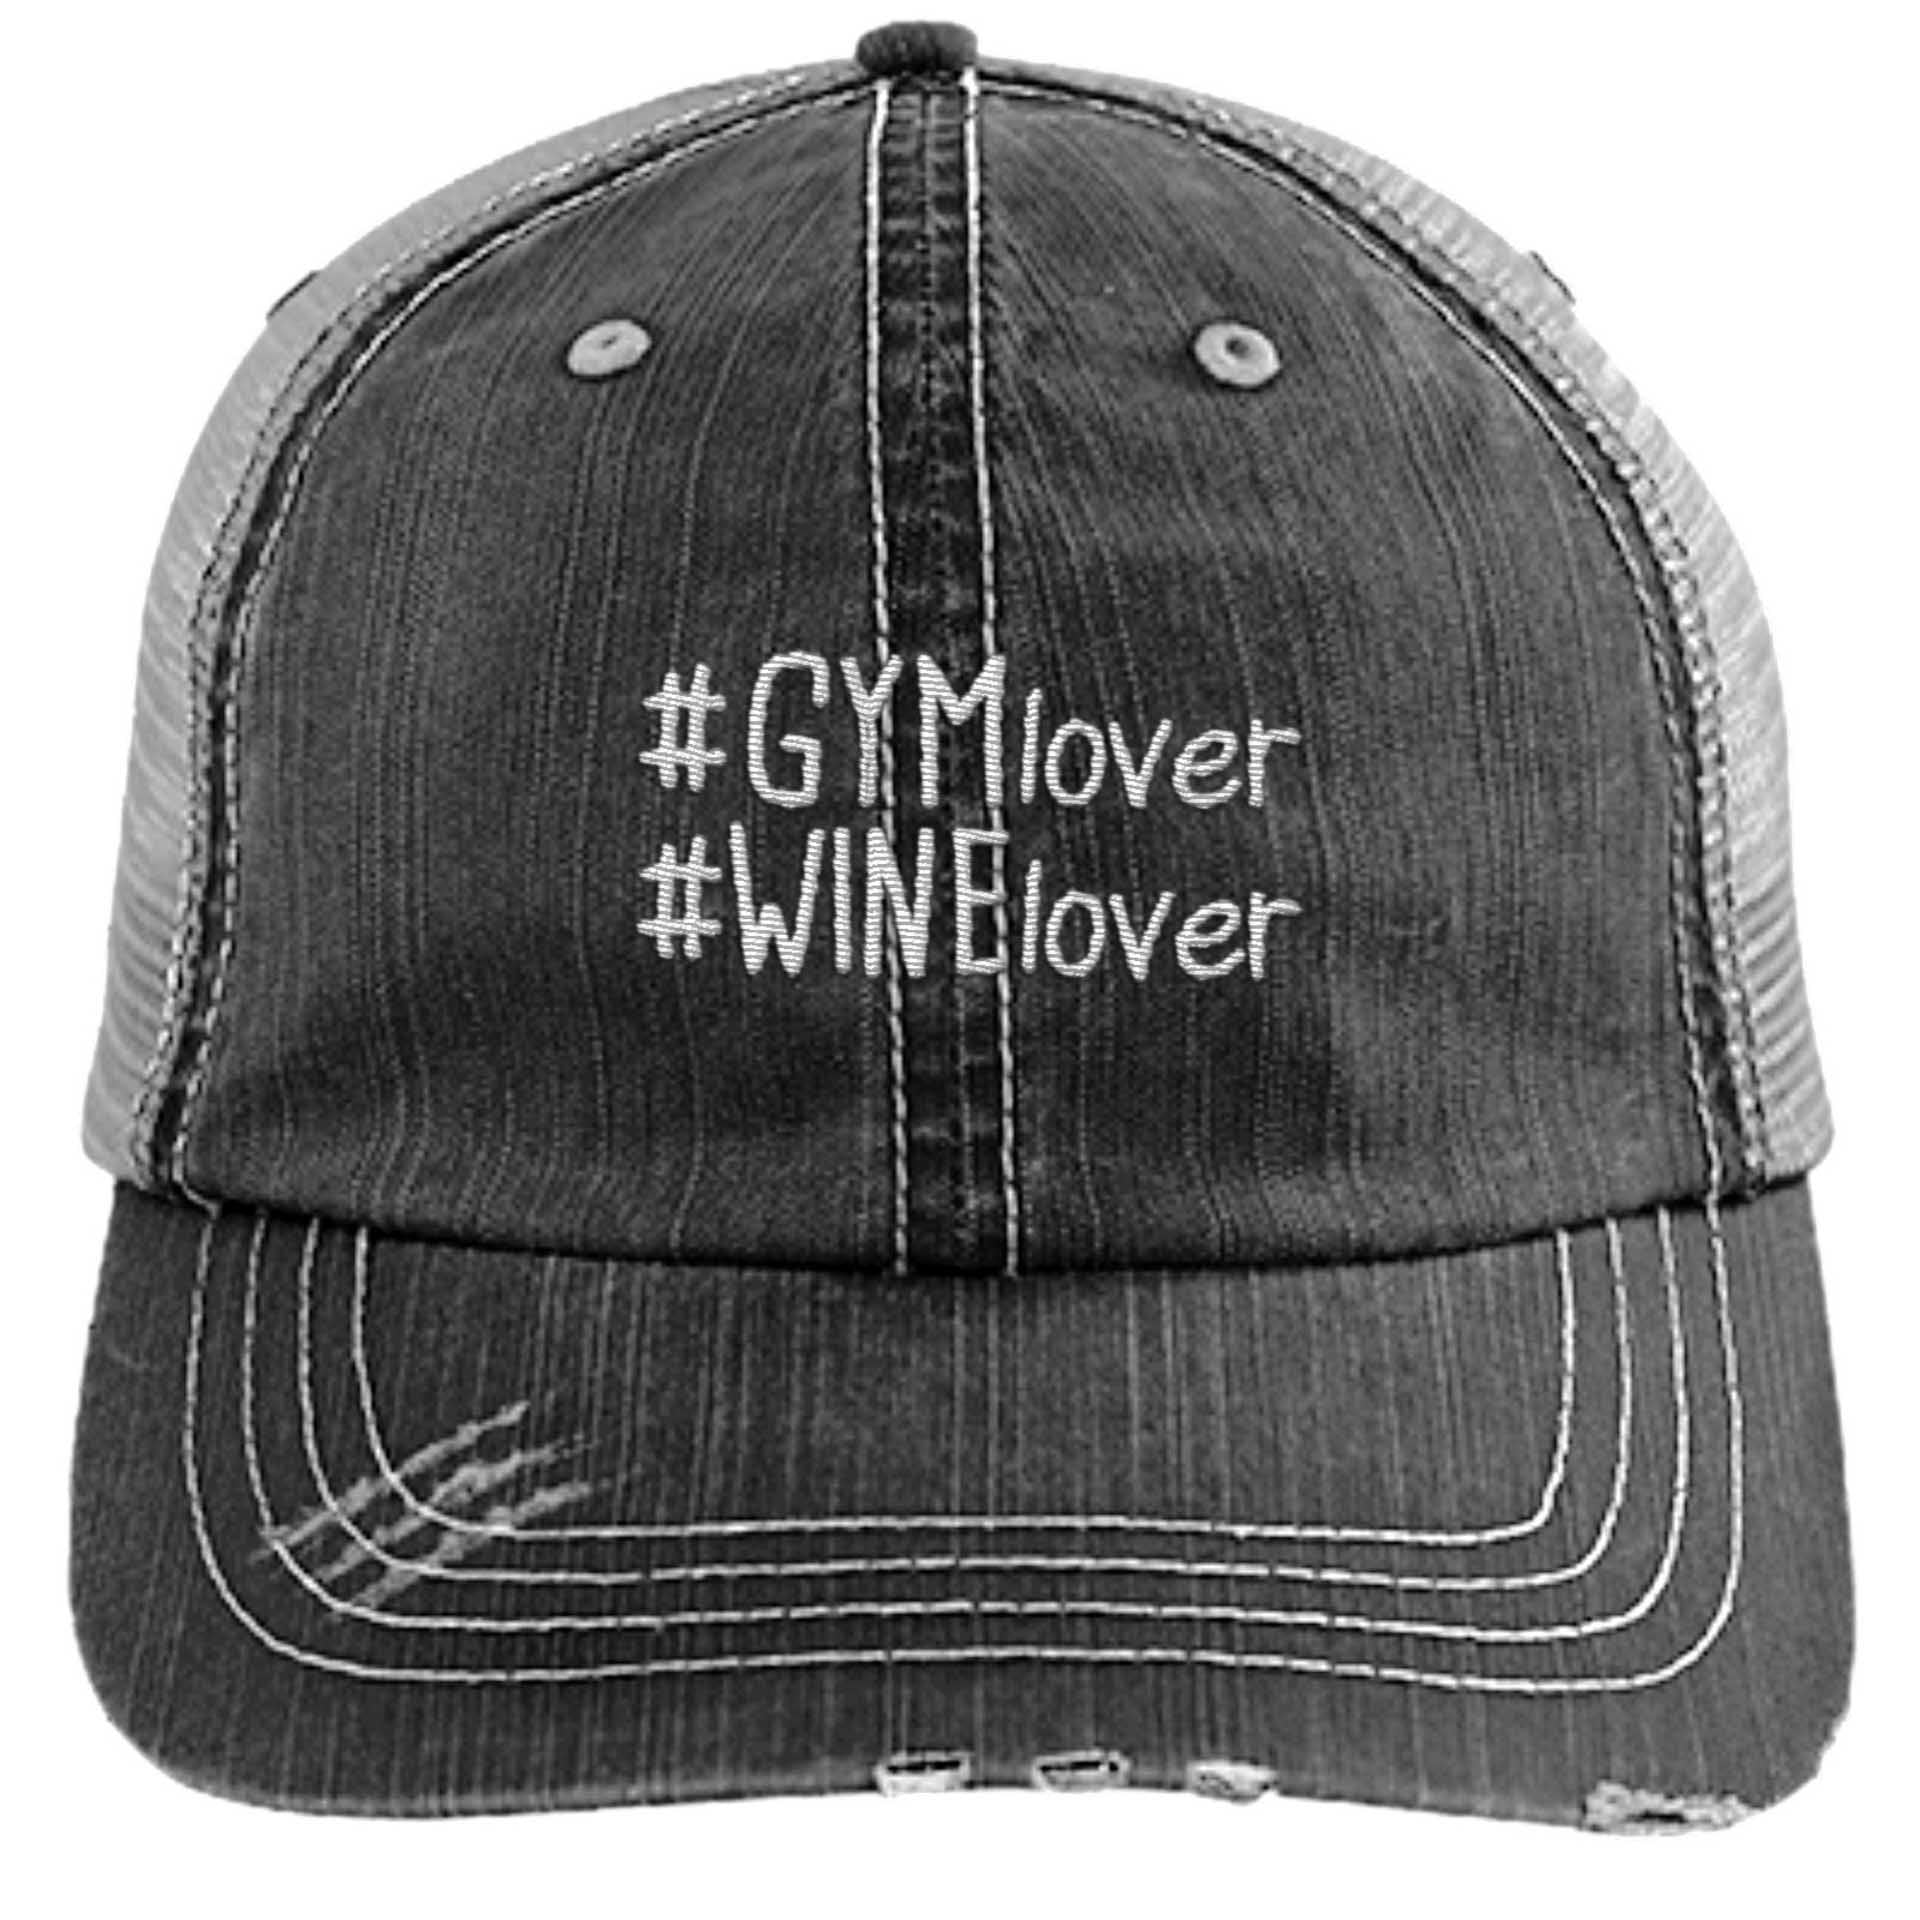 Gym Lover Wine Lover Hashtag - Distressed Trucker Cap (Mesh Back)